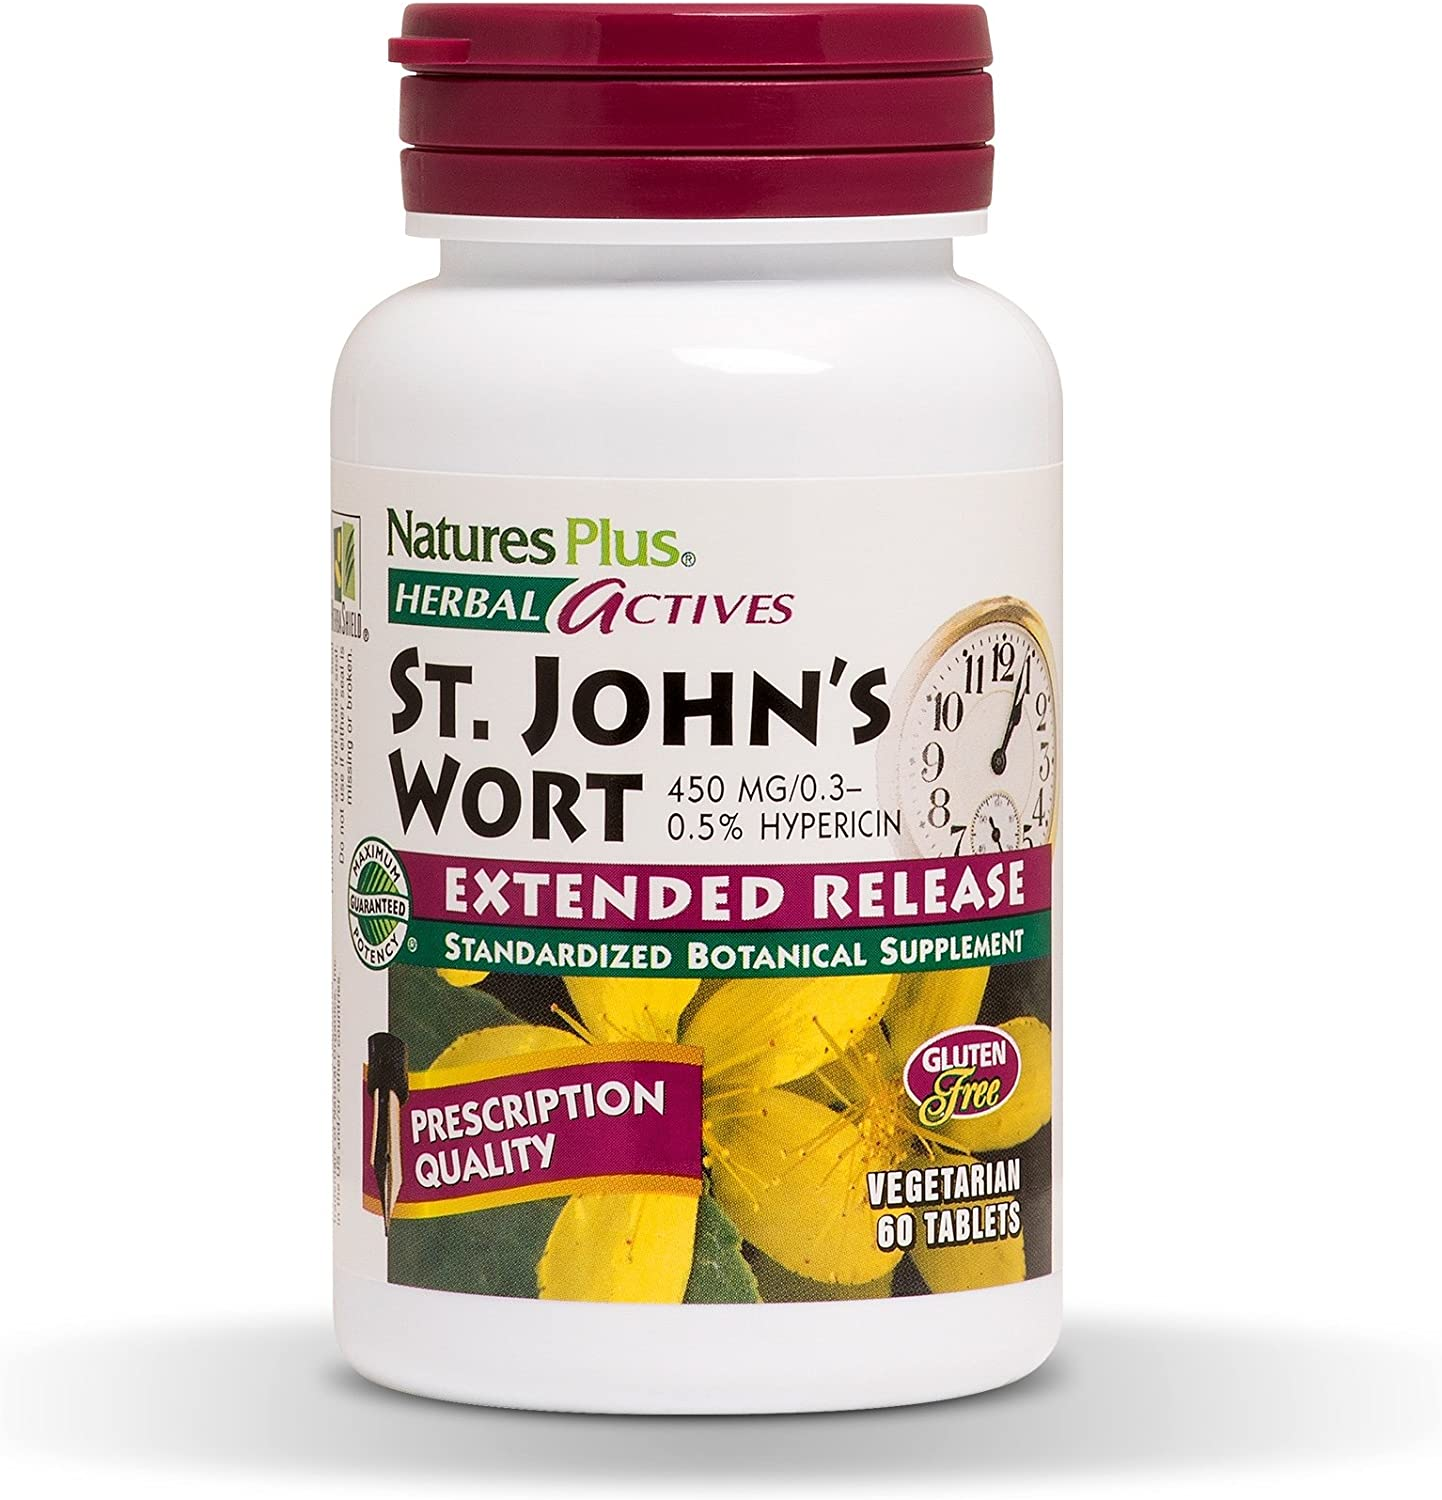 NaturesPlus Herbal Actives St John's Wort, Extended Release - 450 mg, 60 Vegan Tablets - Natural Mood Enhancer Supplement - Vegetarian, Gluten-Free - 60 Servings: Health & Personal Care